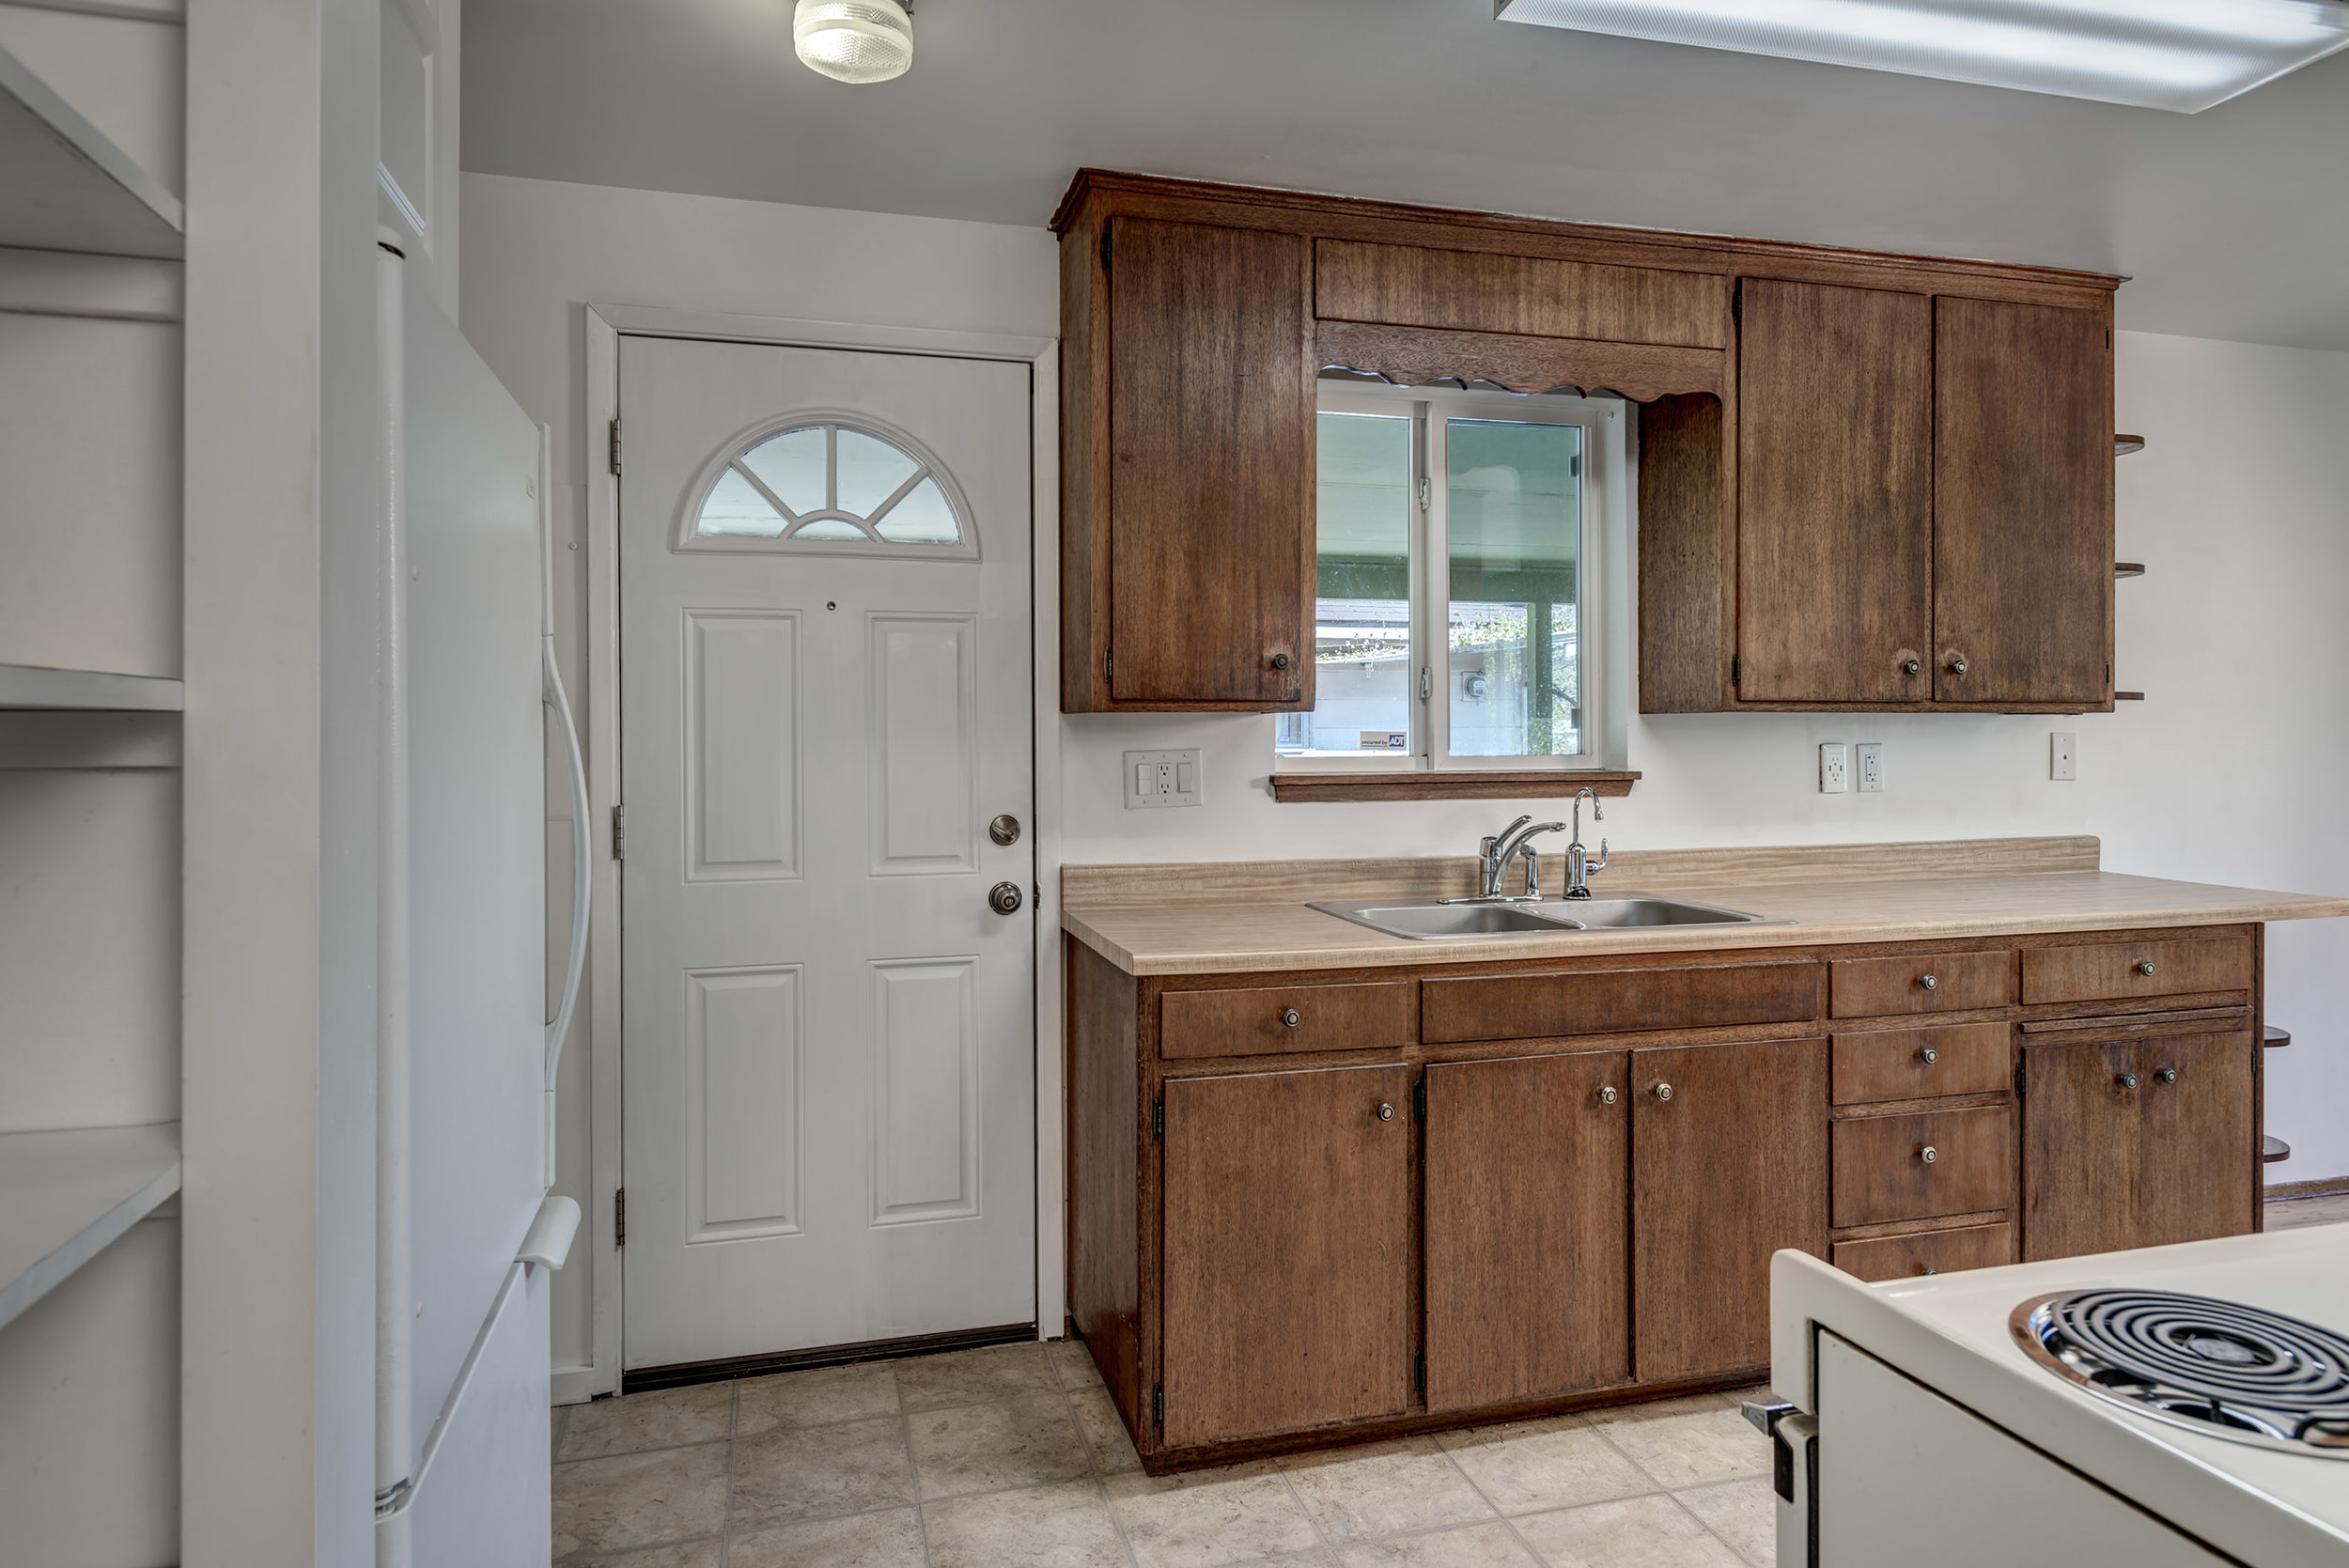 12-Kitchen03.jpg